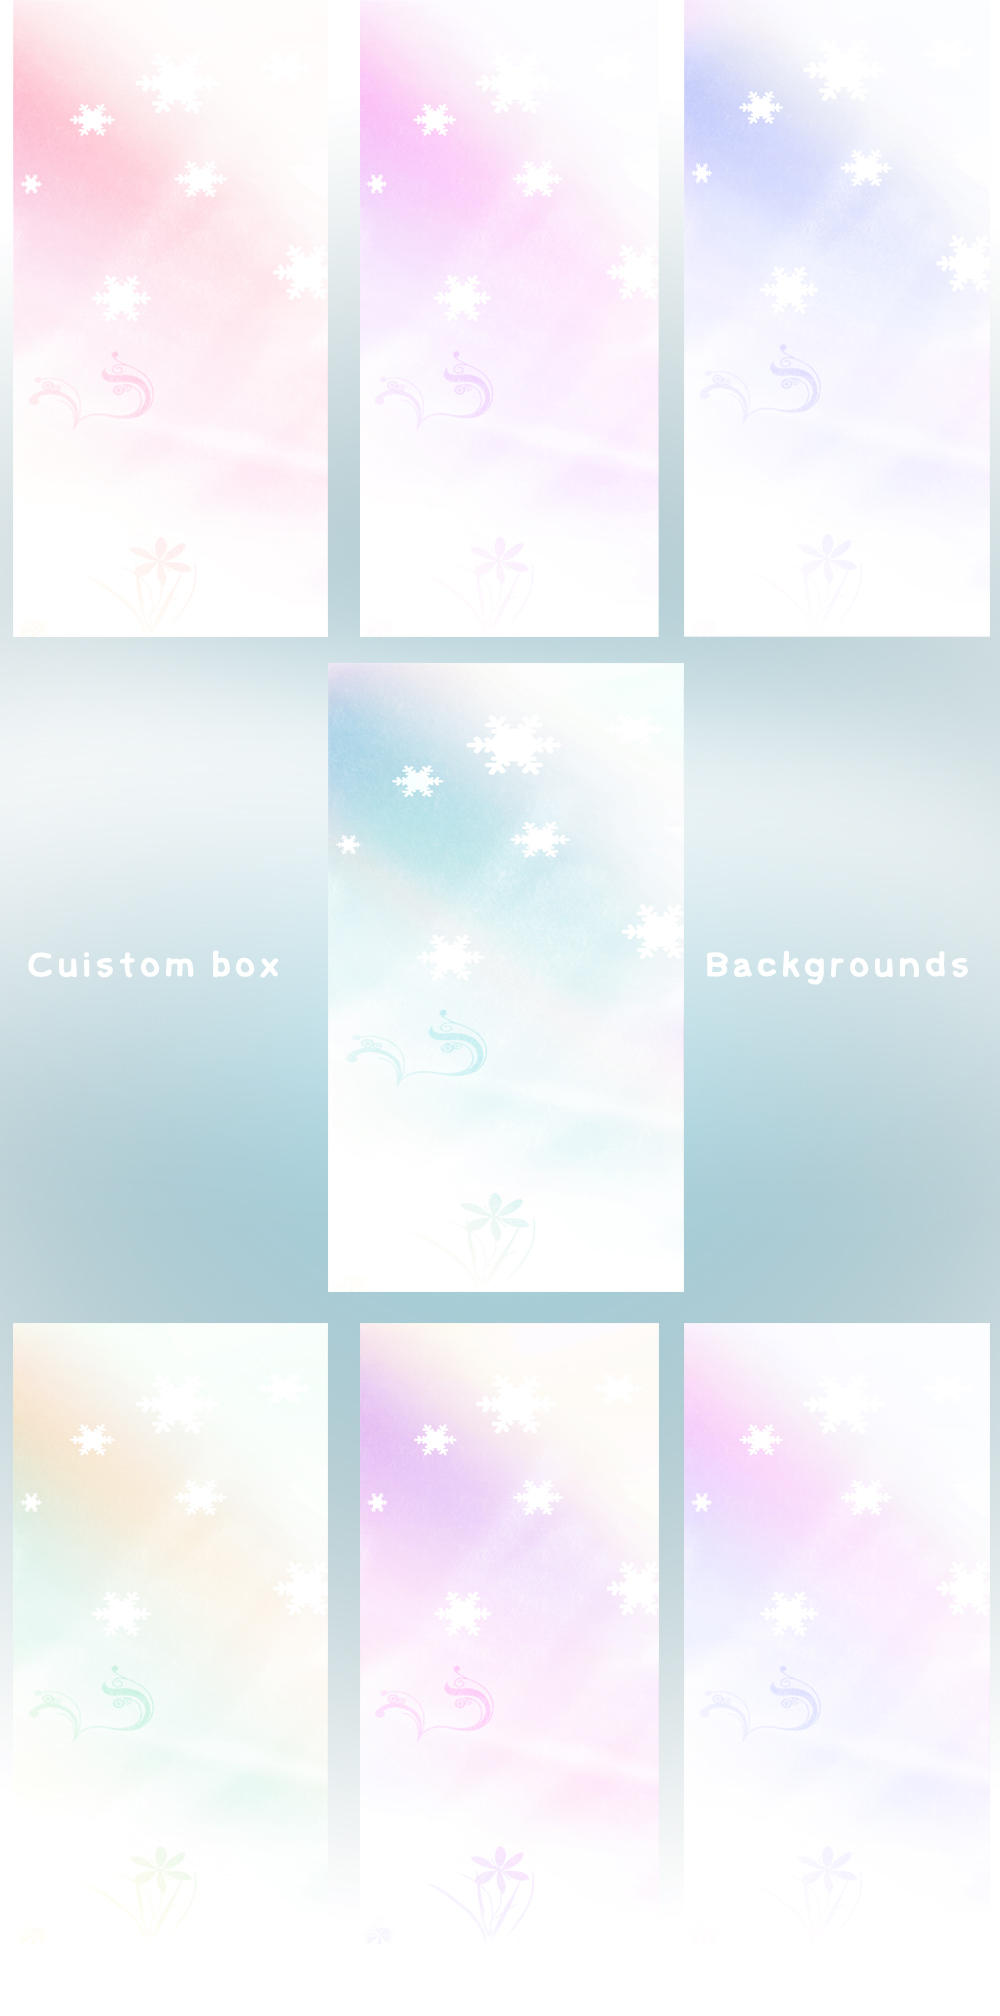 Winter Custom box BG Set by jackroono